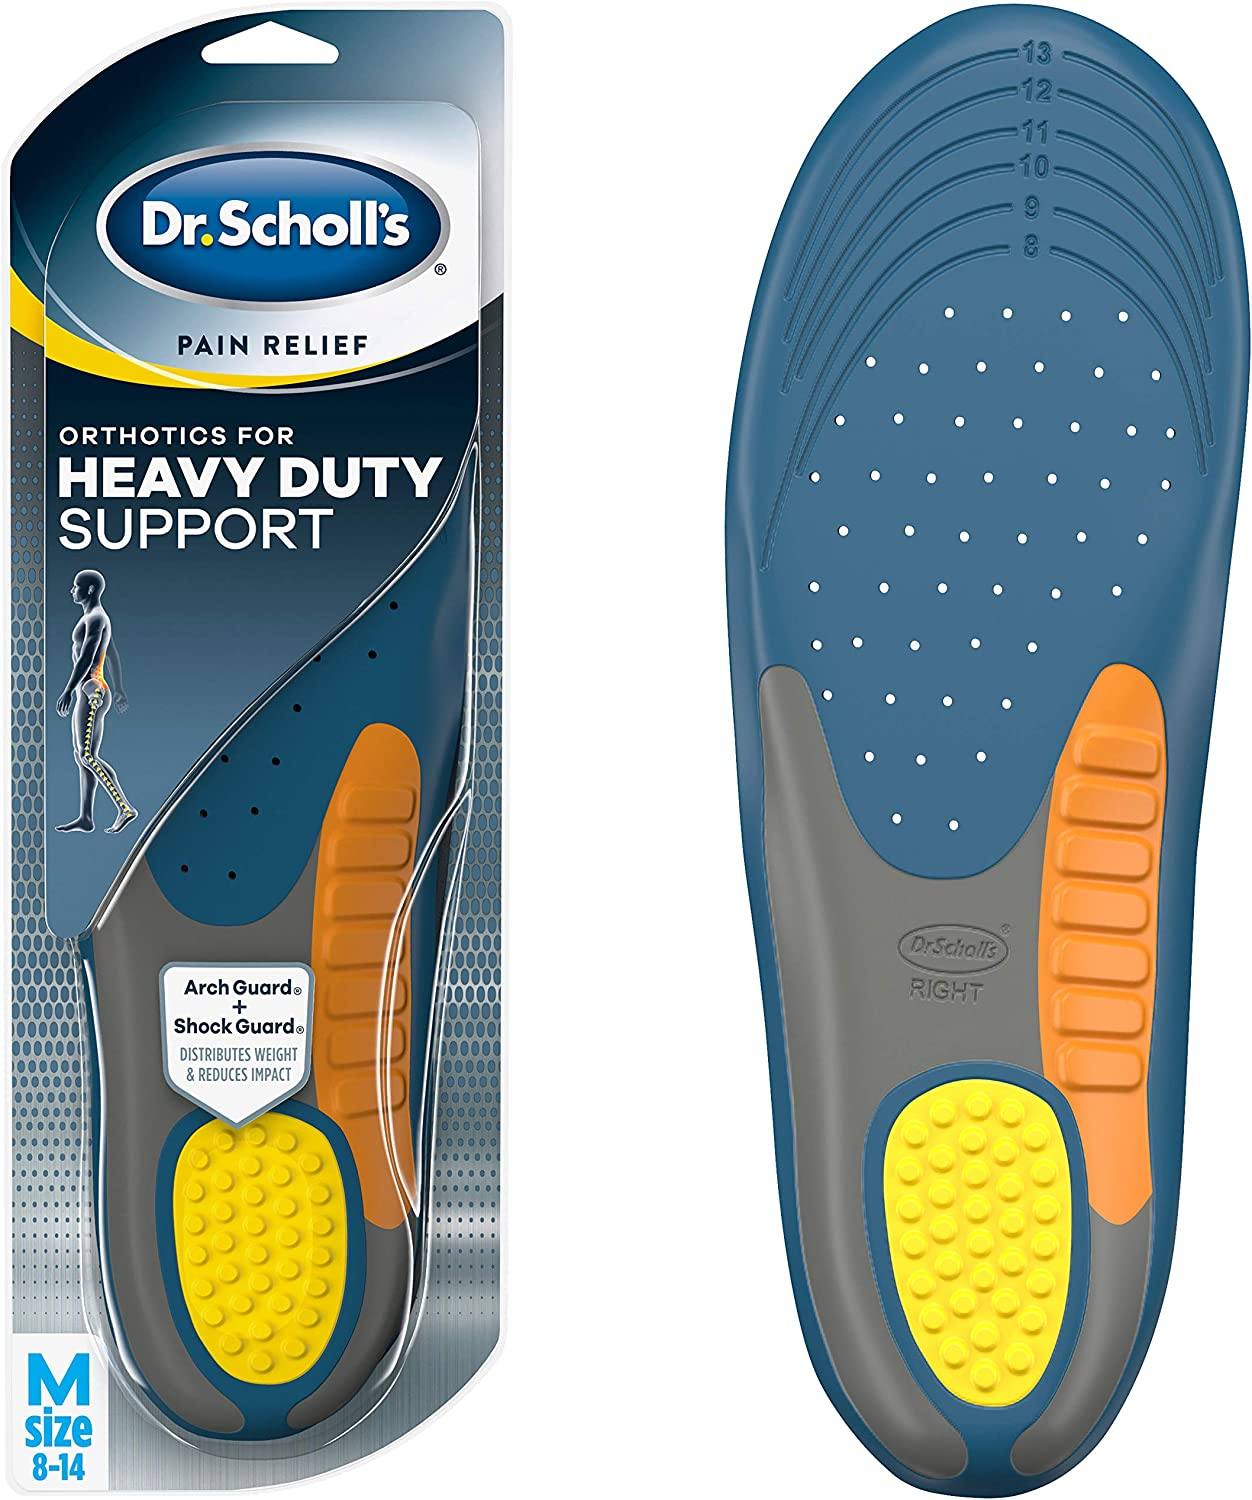 Dr. Scholl's HEAVY DUTY SUPPORT Pain Relief Orthotics // Designed for Men over 200lbs with Technology to Distribute Weight and Absorb Shock with Every Step (for Men's 8-14): Health & Personal Care